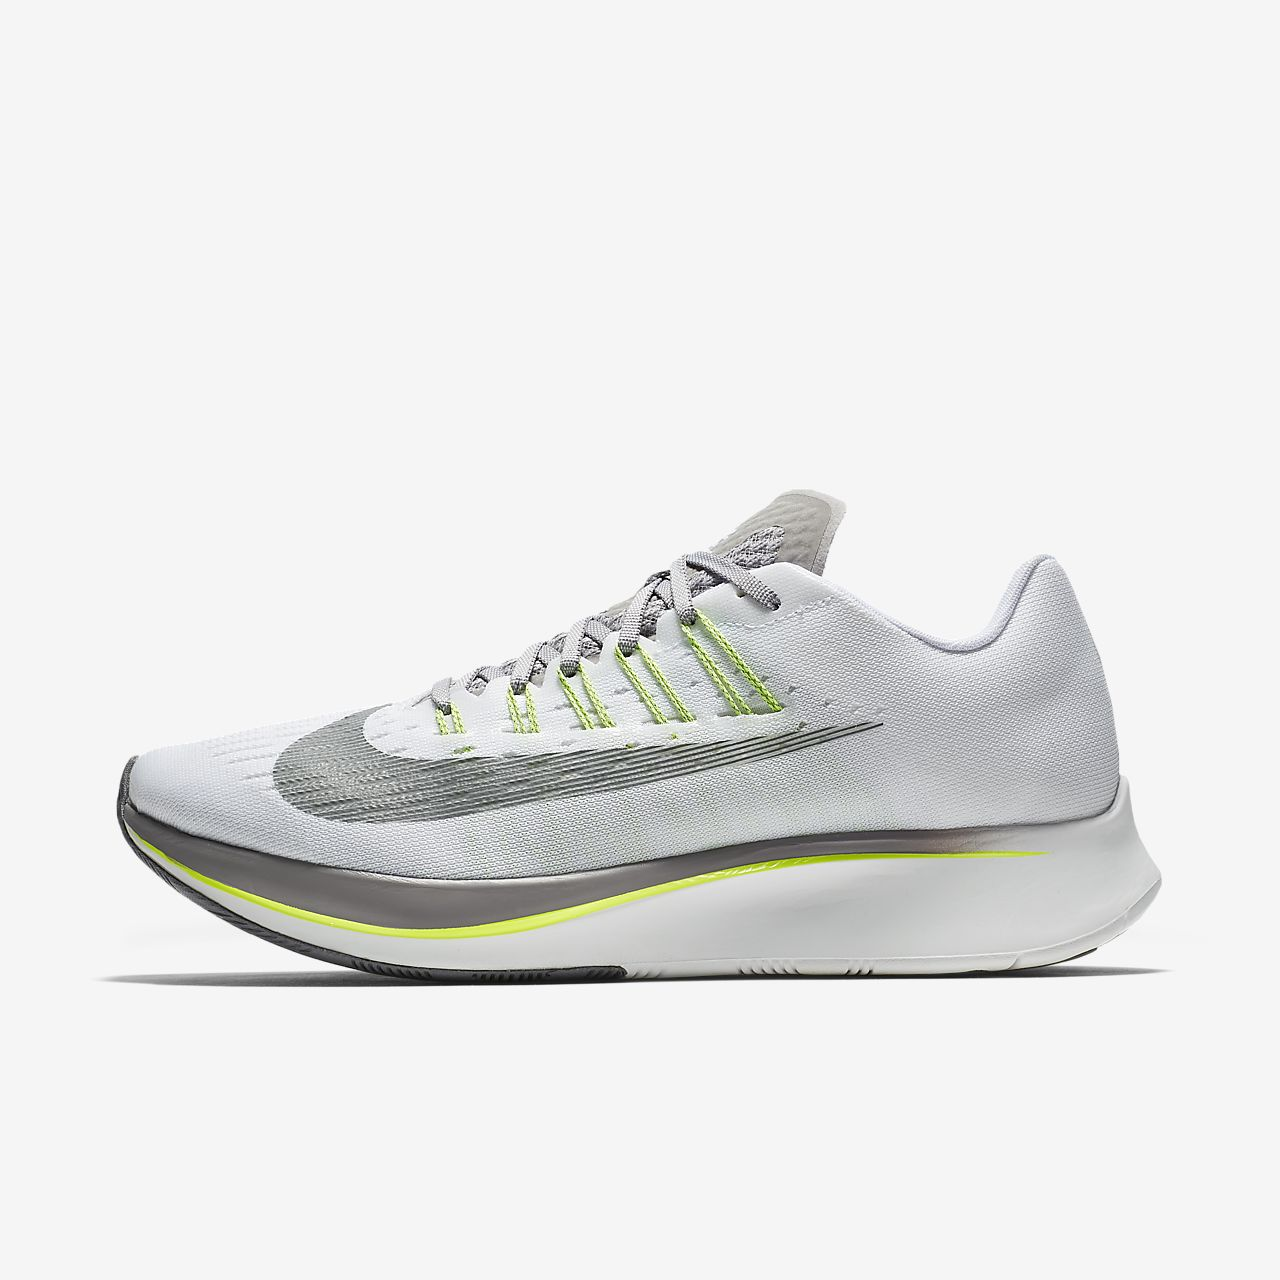 ae852a5bb23d Nike Zoom Fly Men s Running Shoe. Nike.com